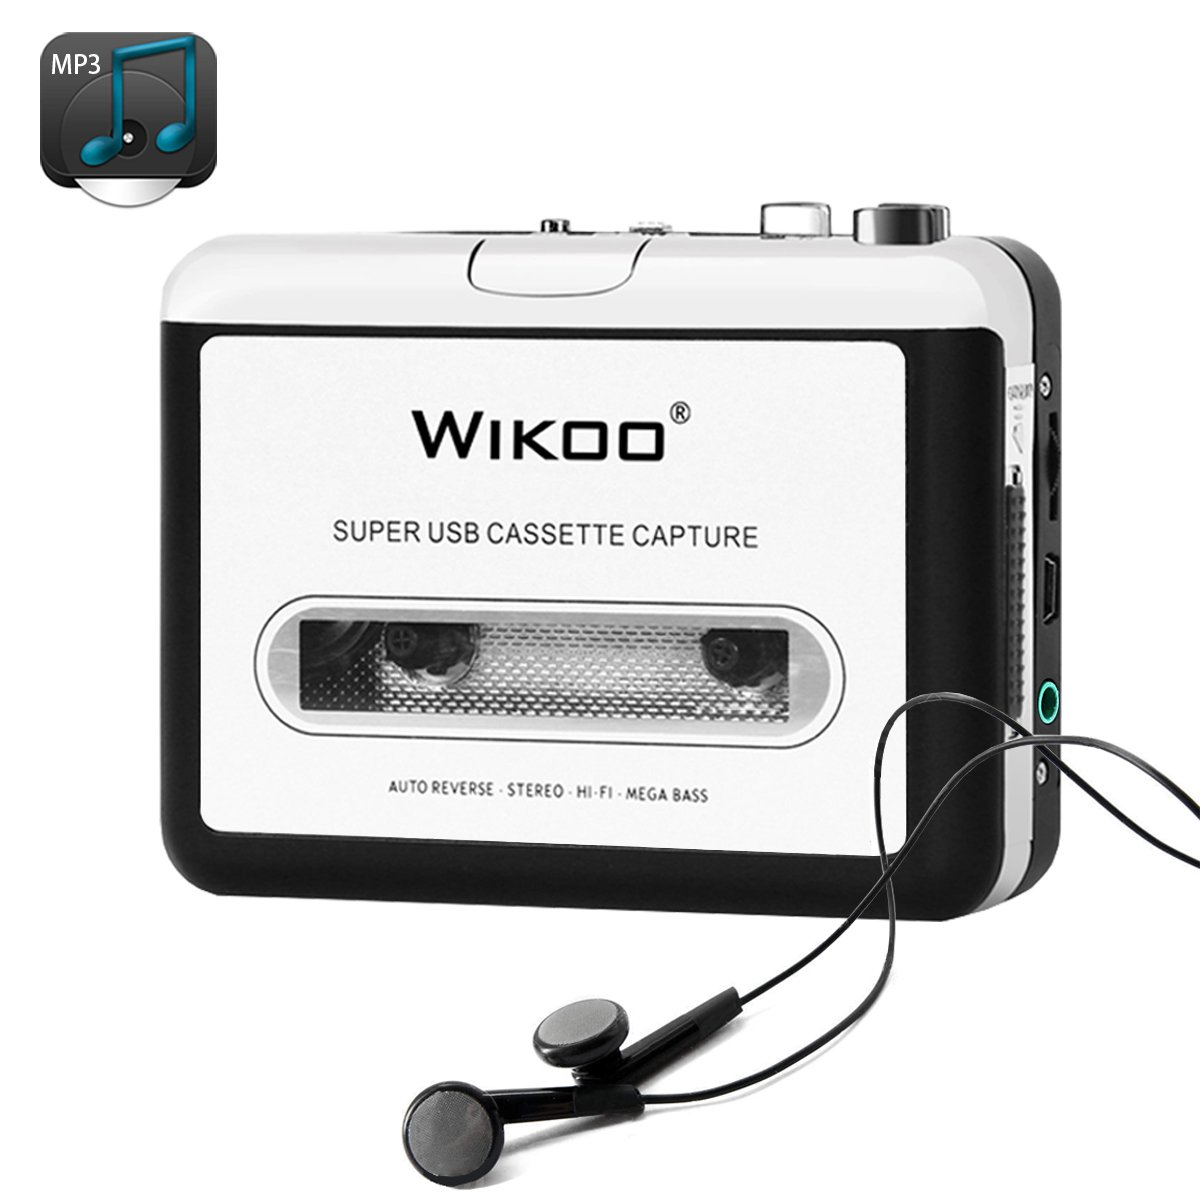 Wikoo Portable USB Cassette to Mp3 Converter with Earphone,USB Cassette to MP3 Converter Capture for Windows Xp/2000/7/Vista User/Mac Os 9/X User